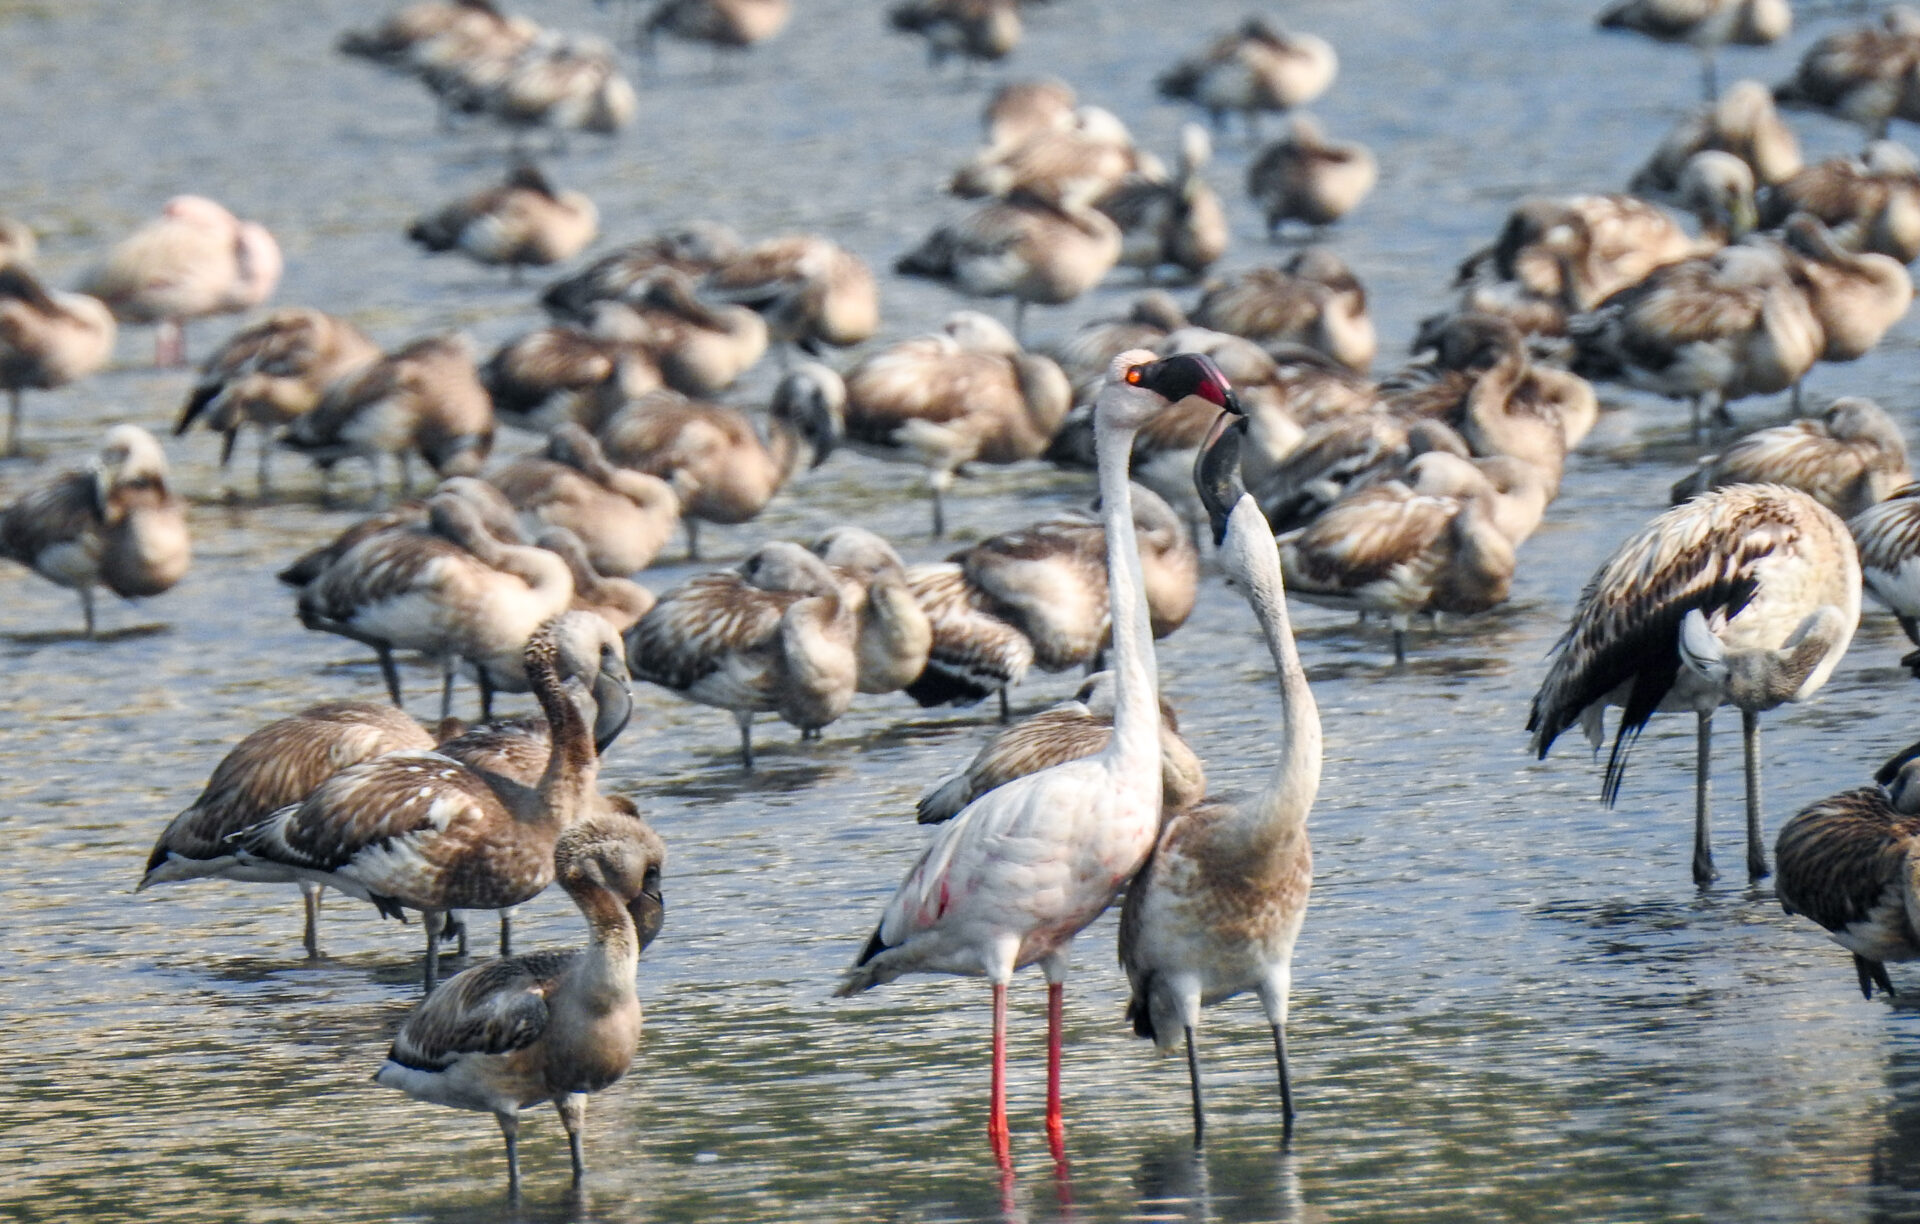 Lesser Flamingo feeding